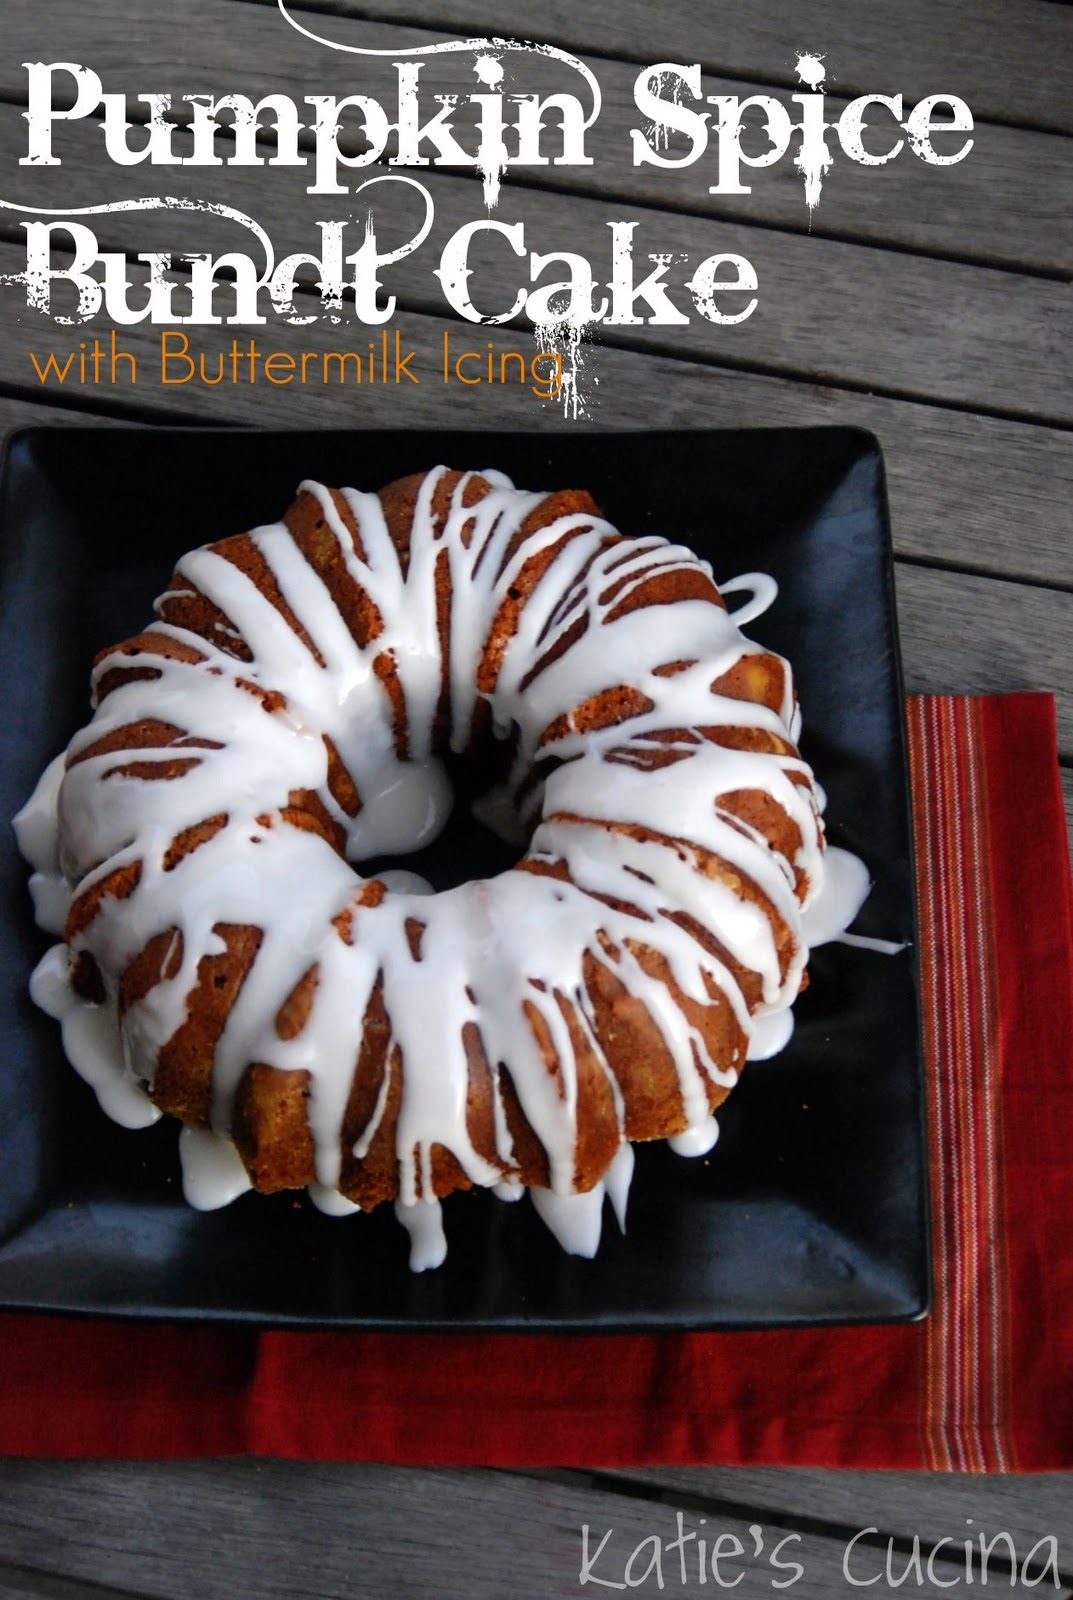 Pumpkin Spice Bundt Cake with Buttermilk Icing - Katie's Cucina